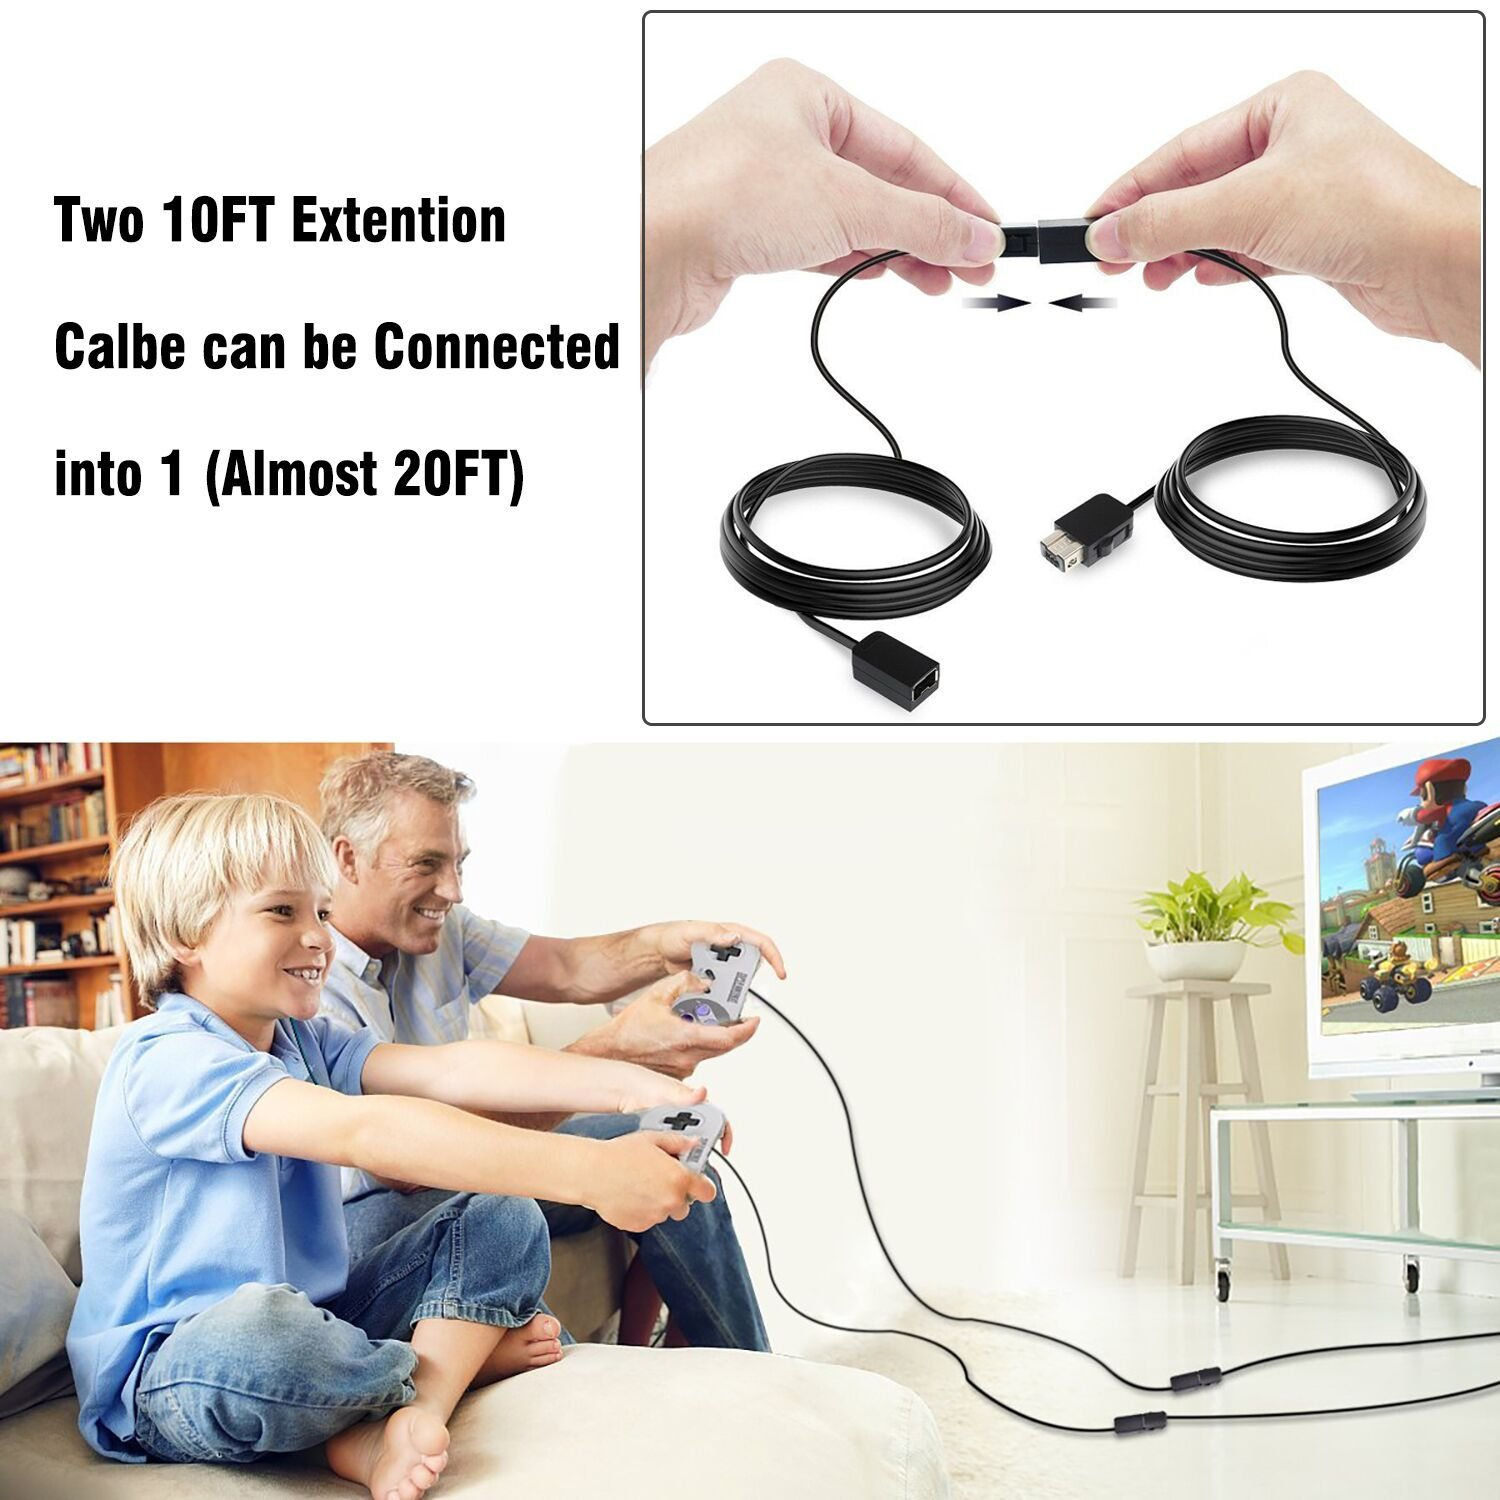 SNES Classic Controller Extension Cable, 2-PACK 3M/10ft Extension Cord Extender for Nintendo Super NES Classic Edition (2017) and Mini NES Classic Edition Controller (2016)